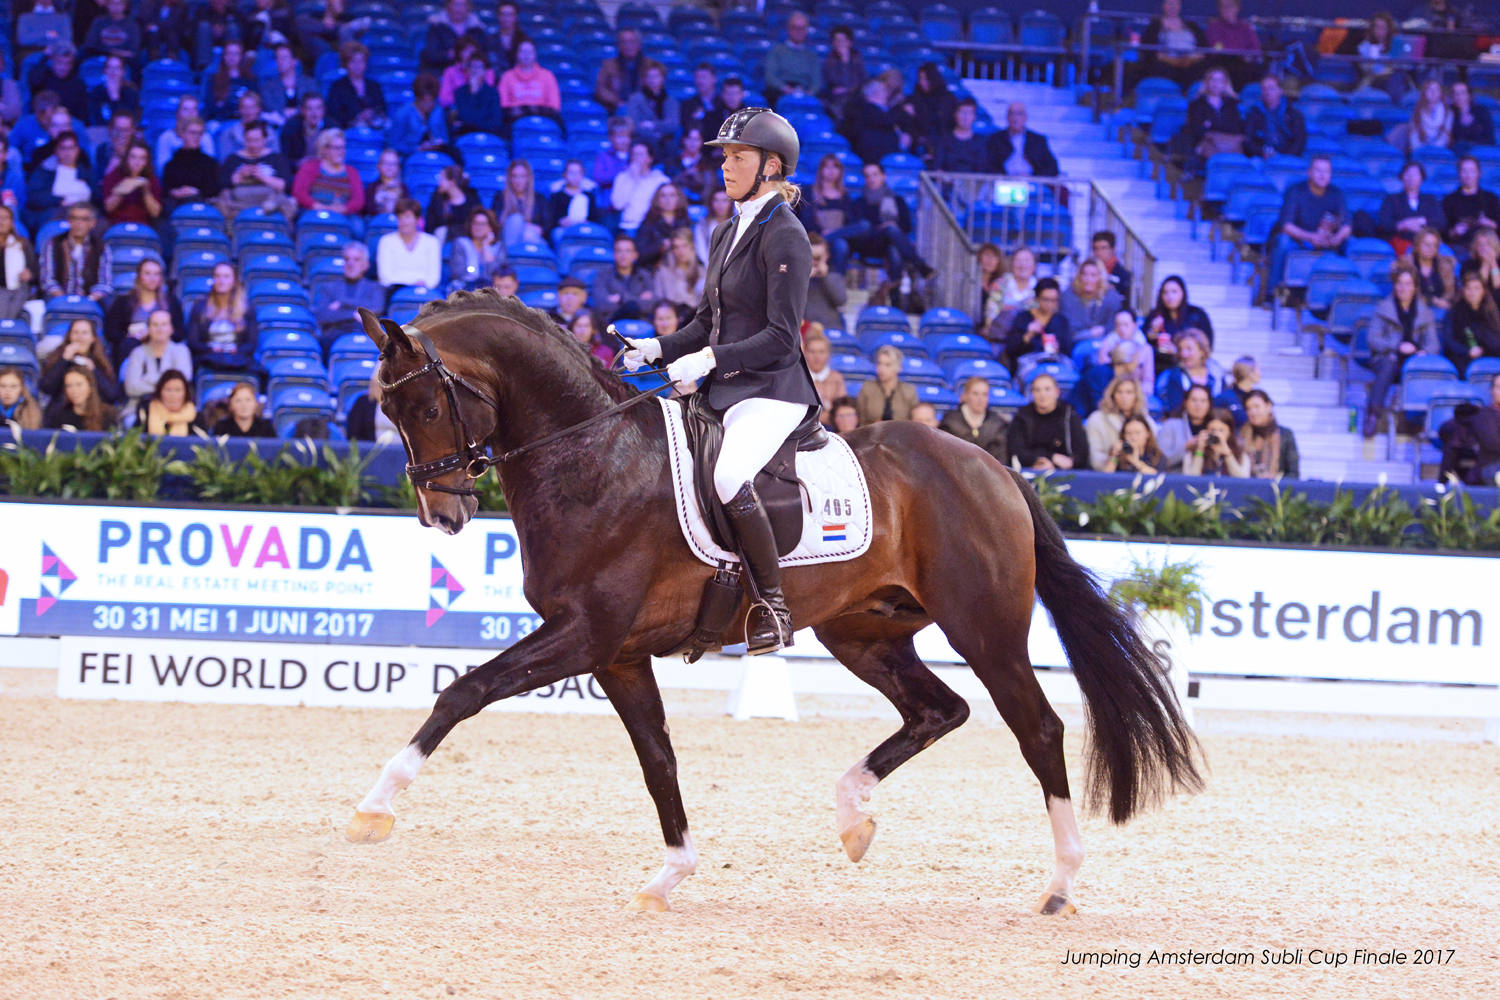 Jumping Amsterdam - Finale Subli Cup